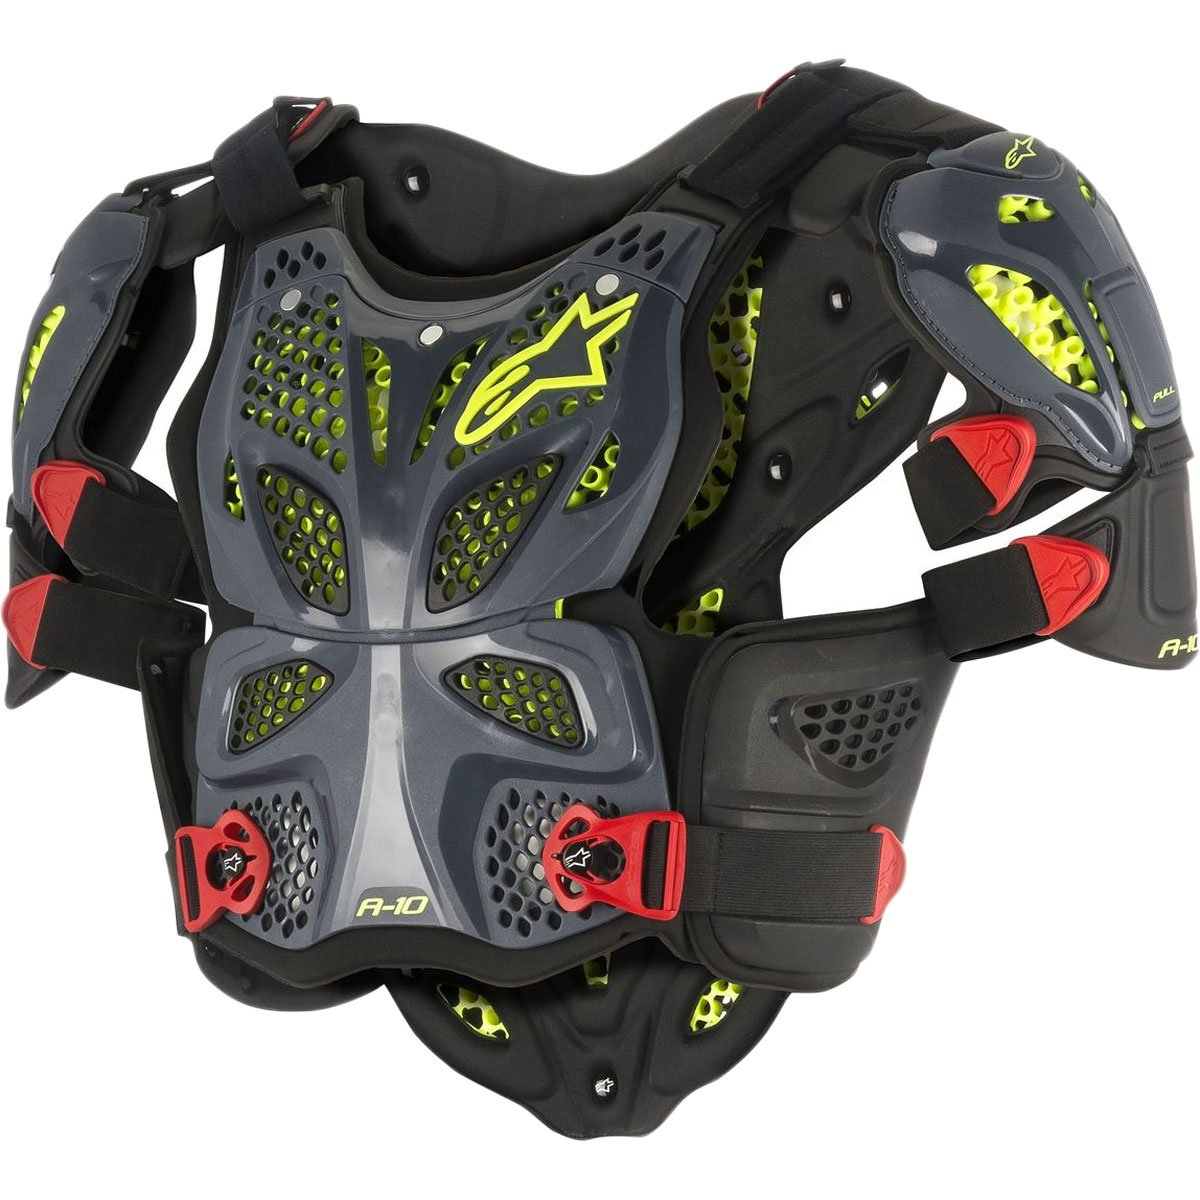 Alpinestars A-10 Full Chest Protector-Anthracite/Black/Red-XL/2XL by Alpinestars